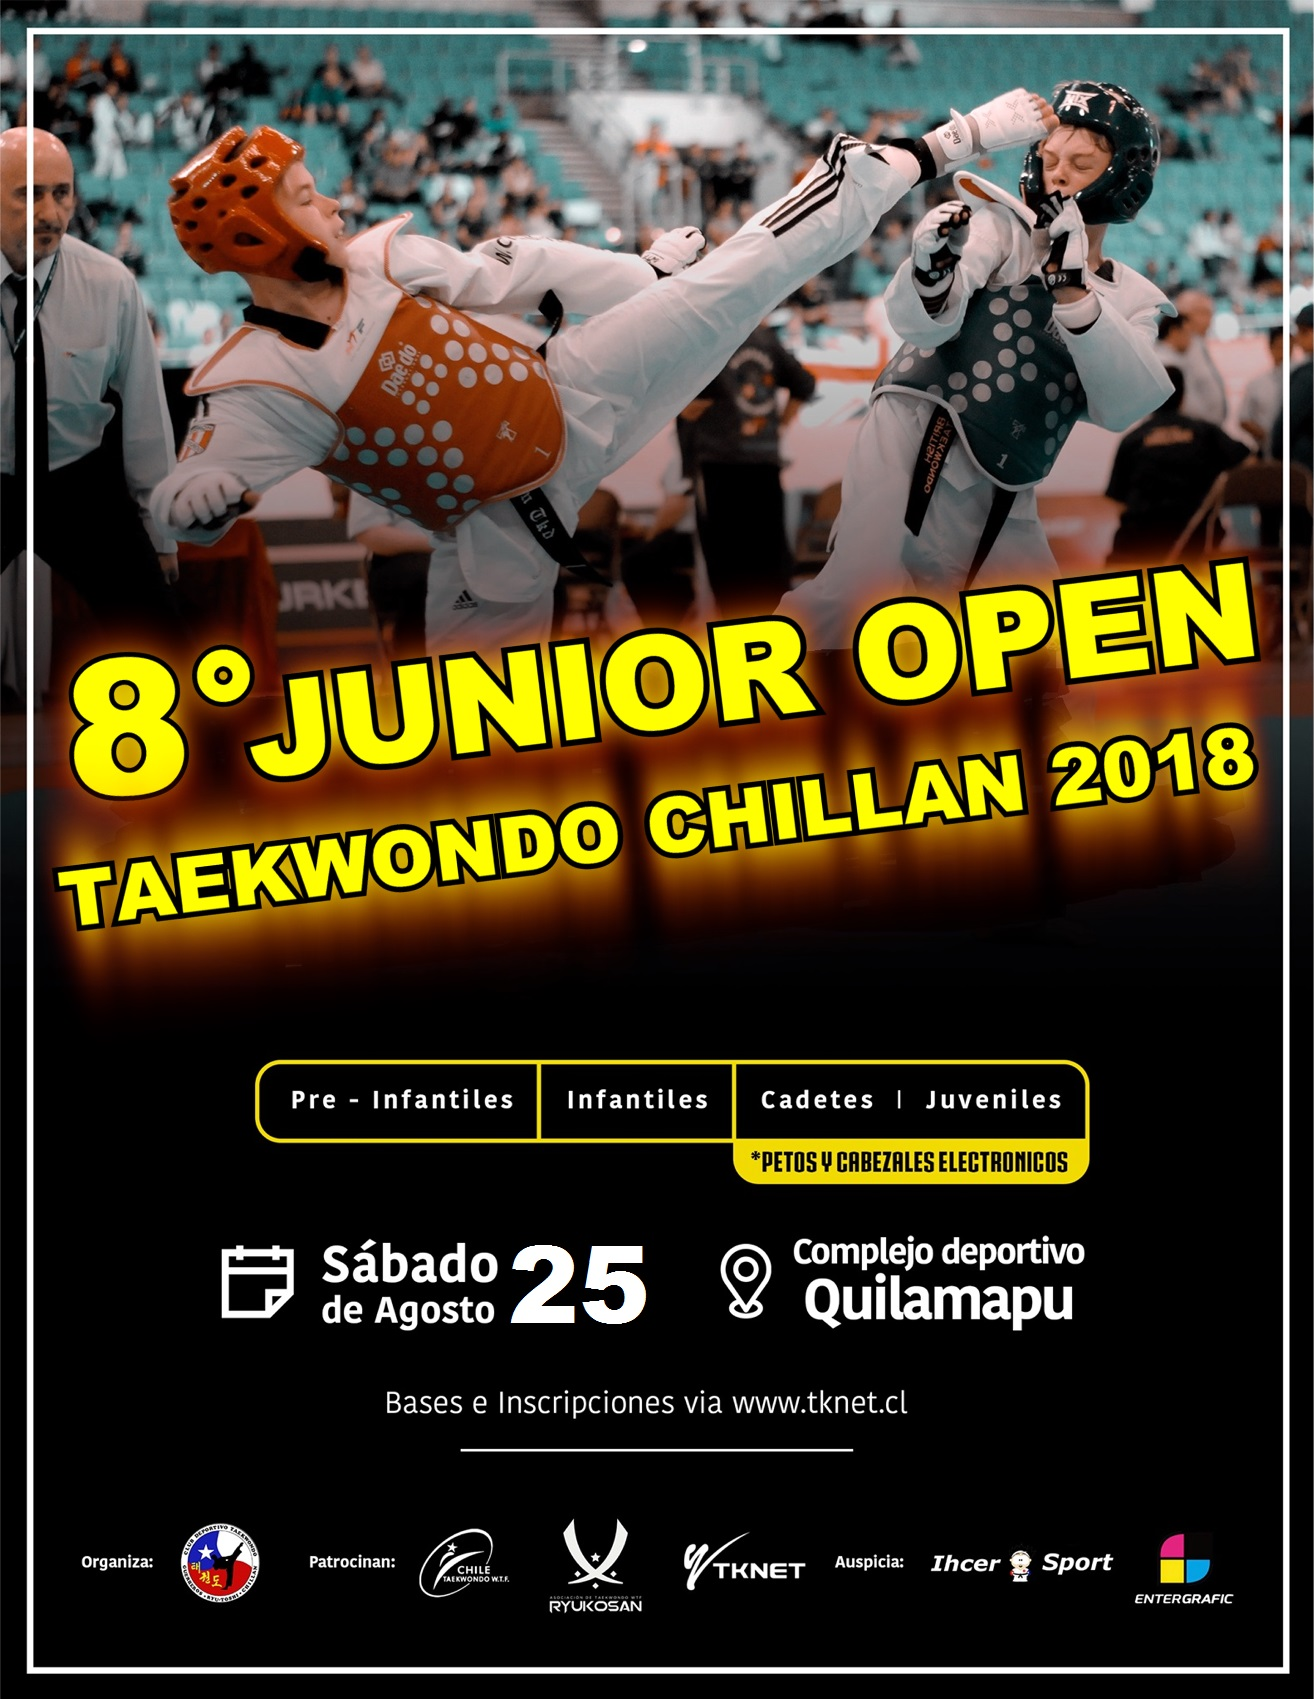 8° JUNIOR OPEN TAEKWONDO CHILLAN 2018